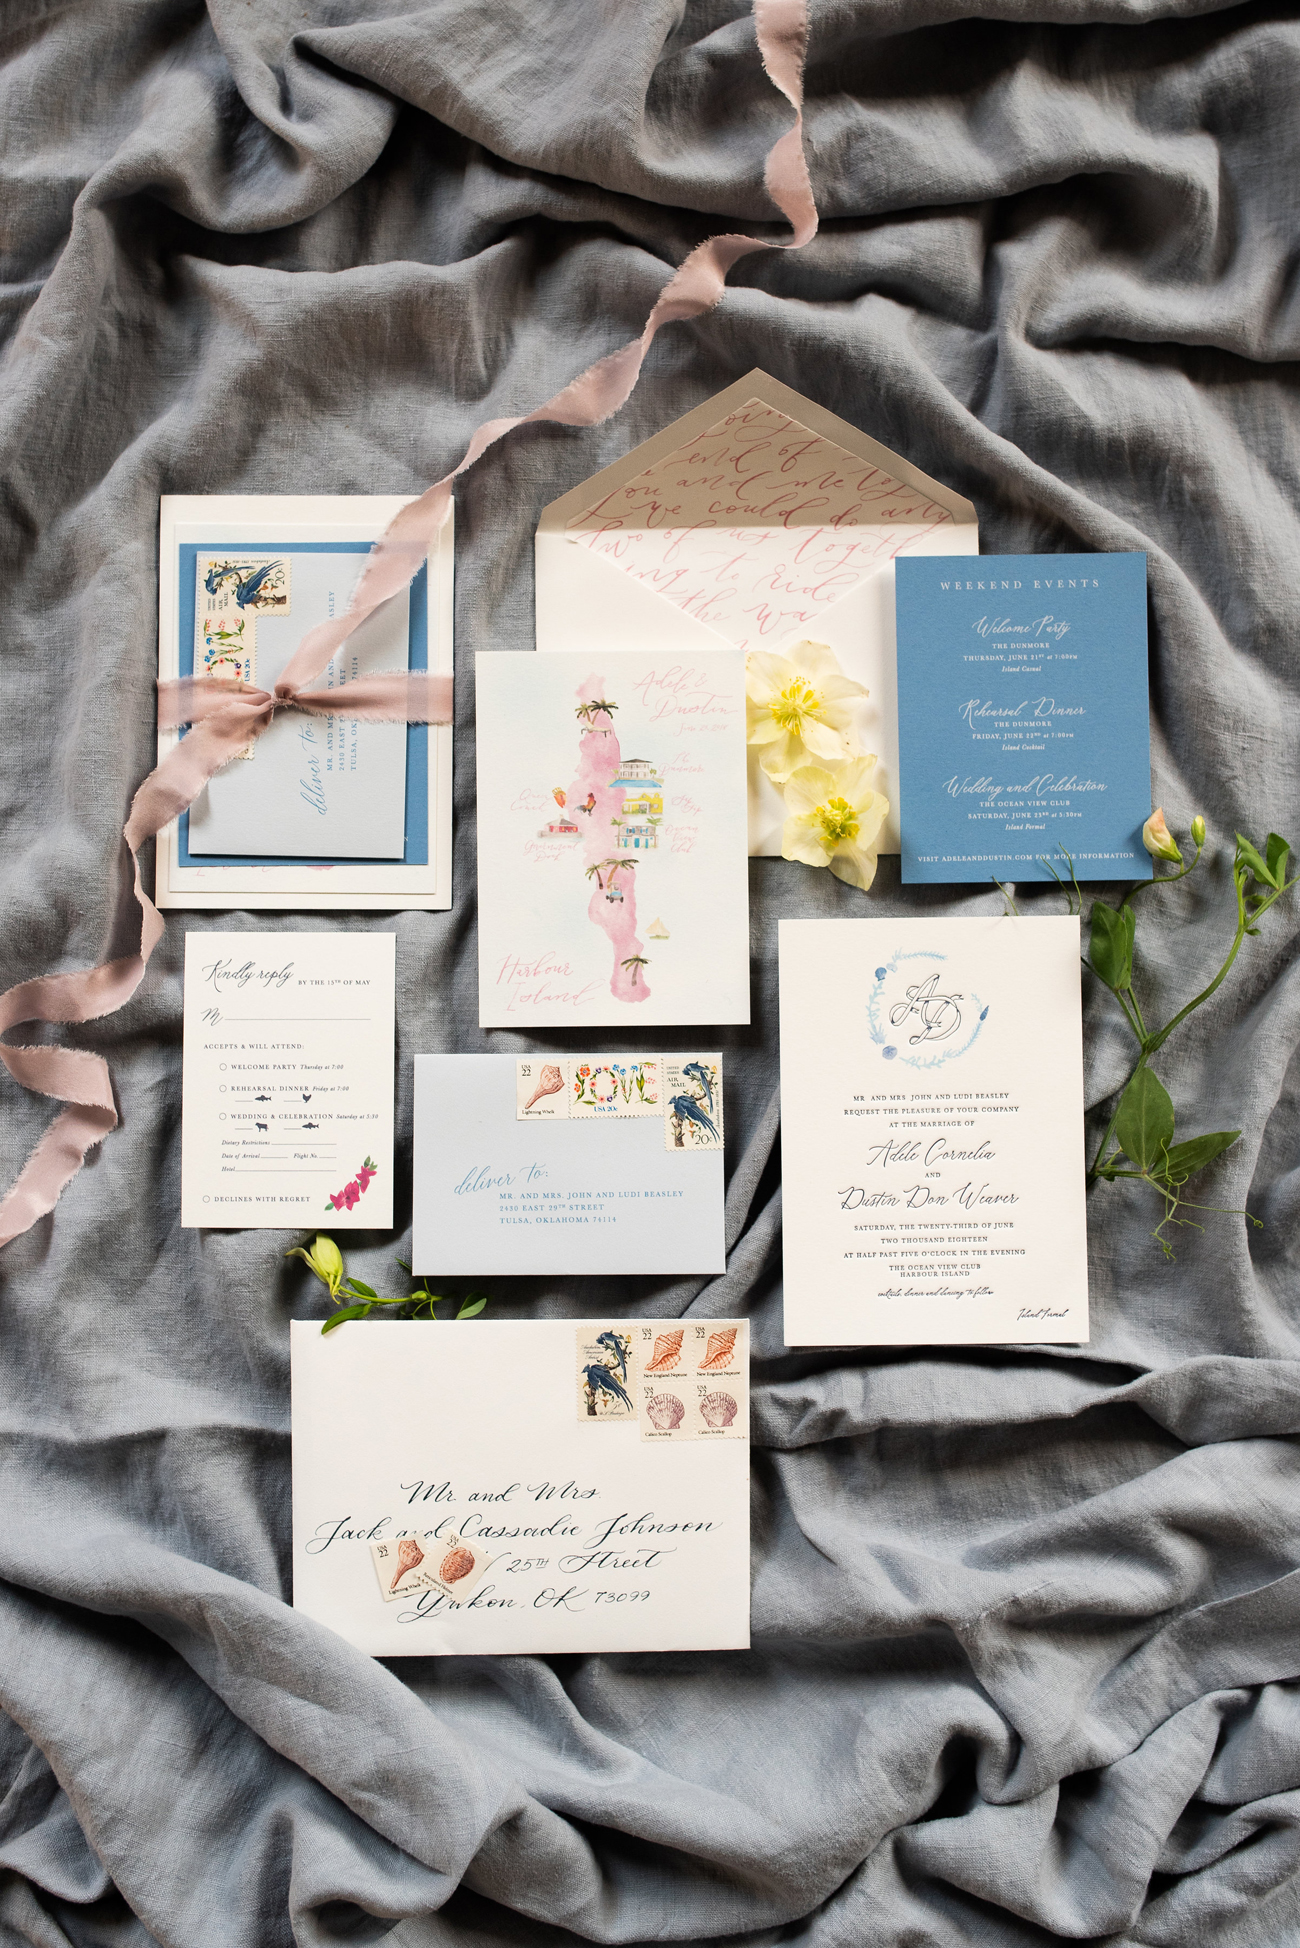 laurelandmarie-wendybobarikin-beachy-wedding-invitations-tulsa.jpg